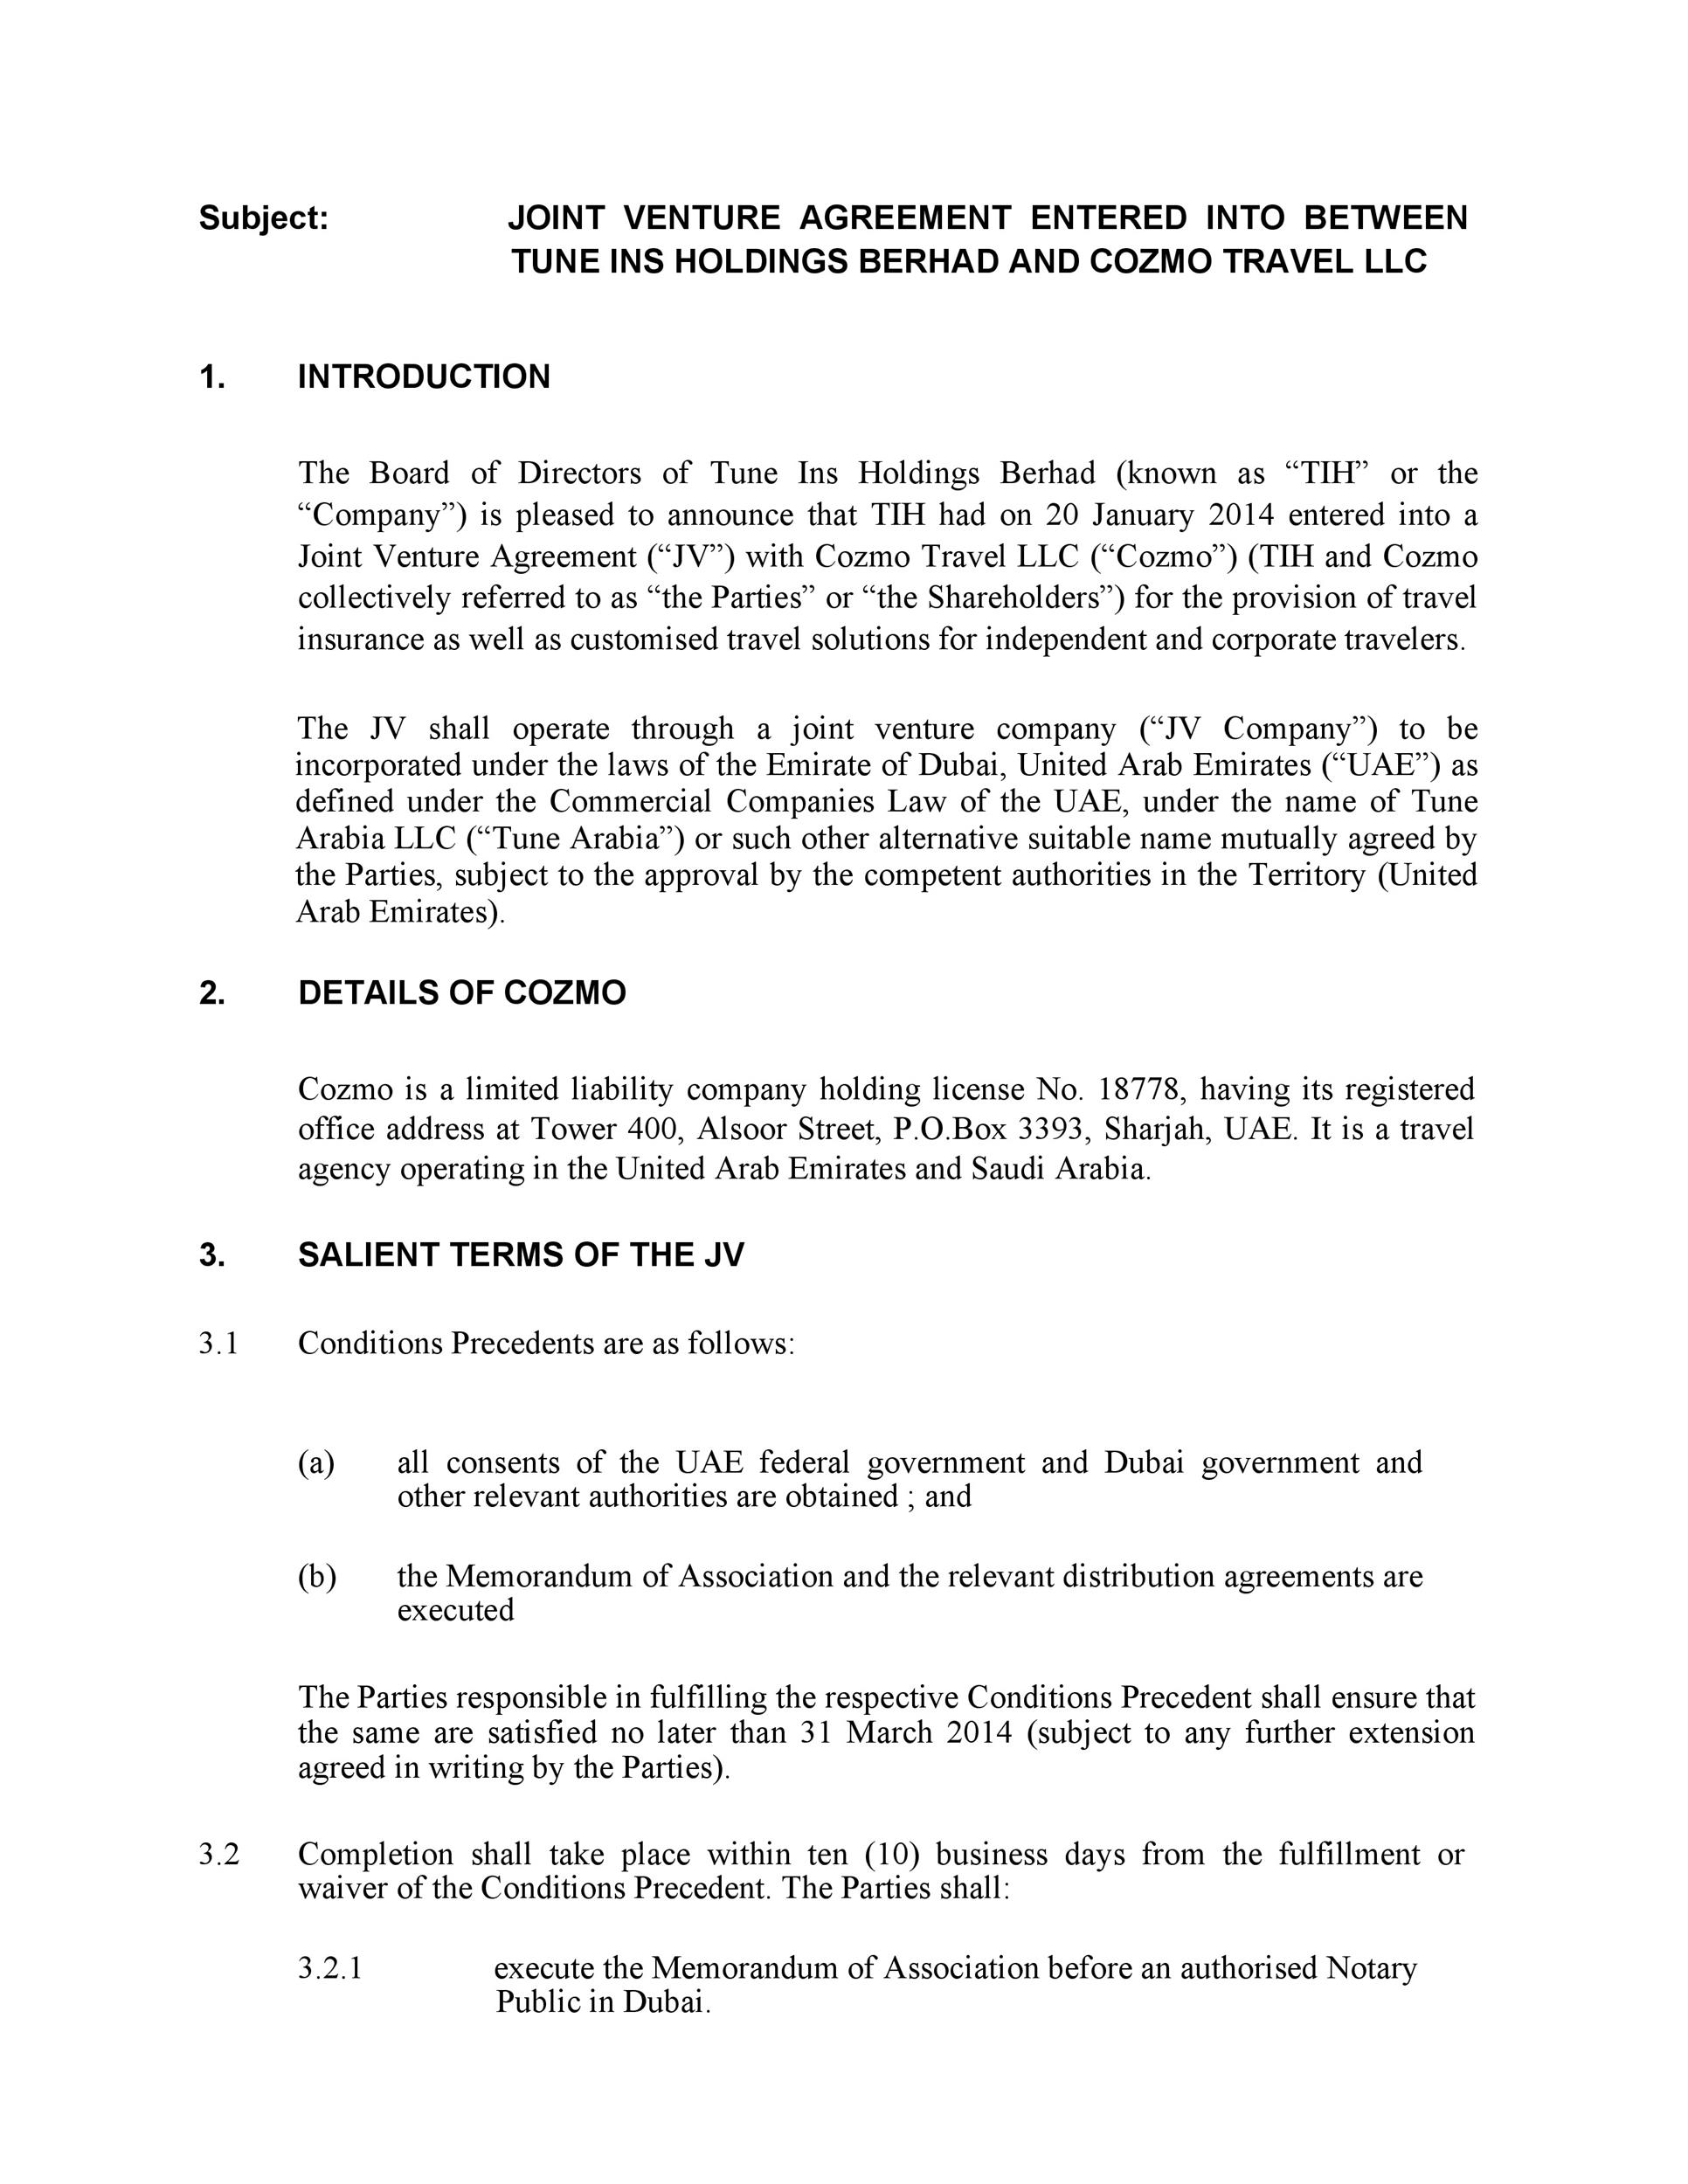 Free Joint Venture Agreement Template 24